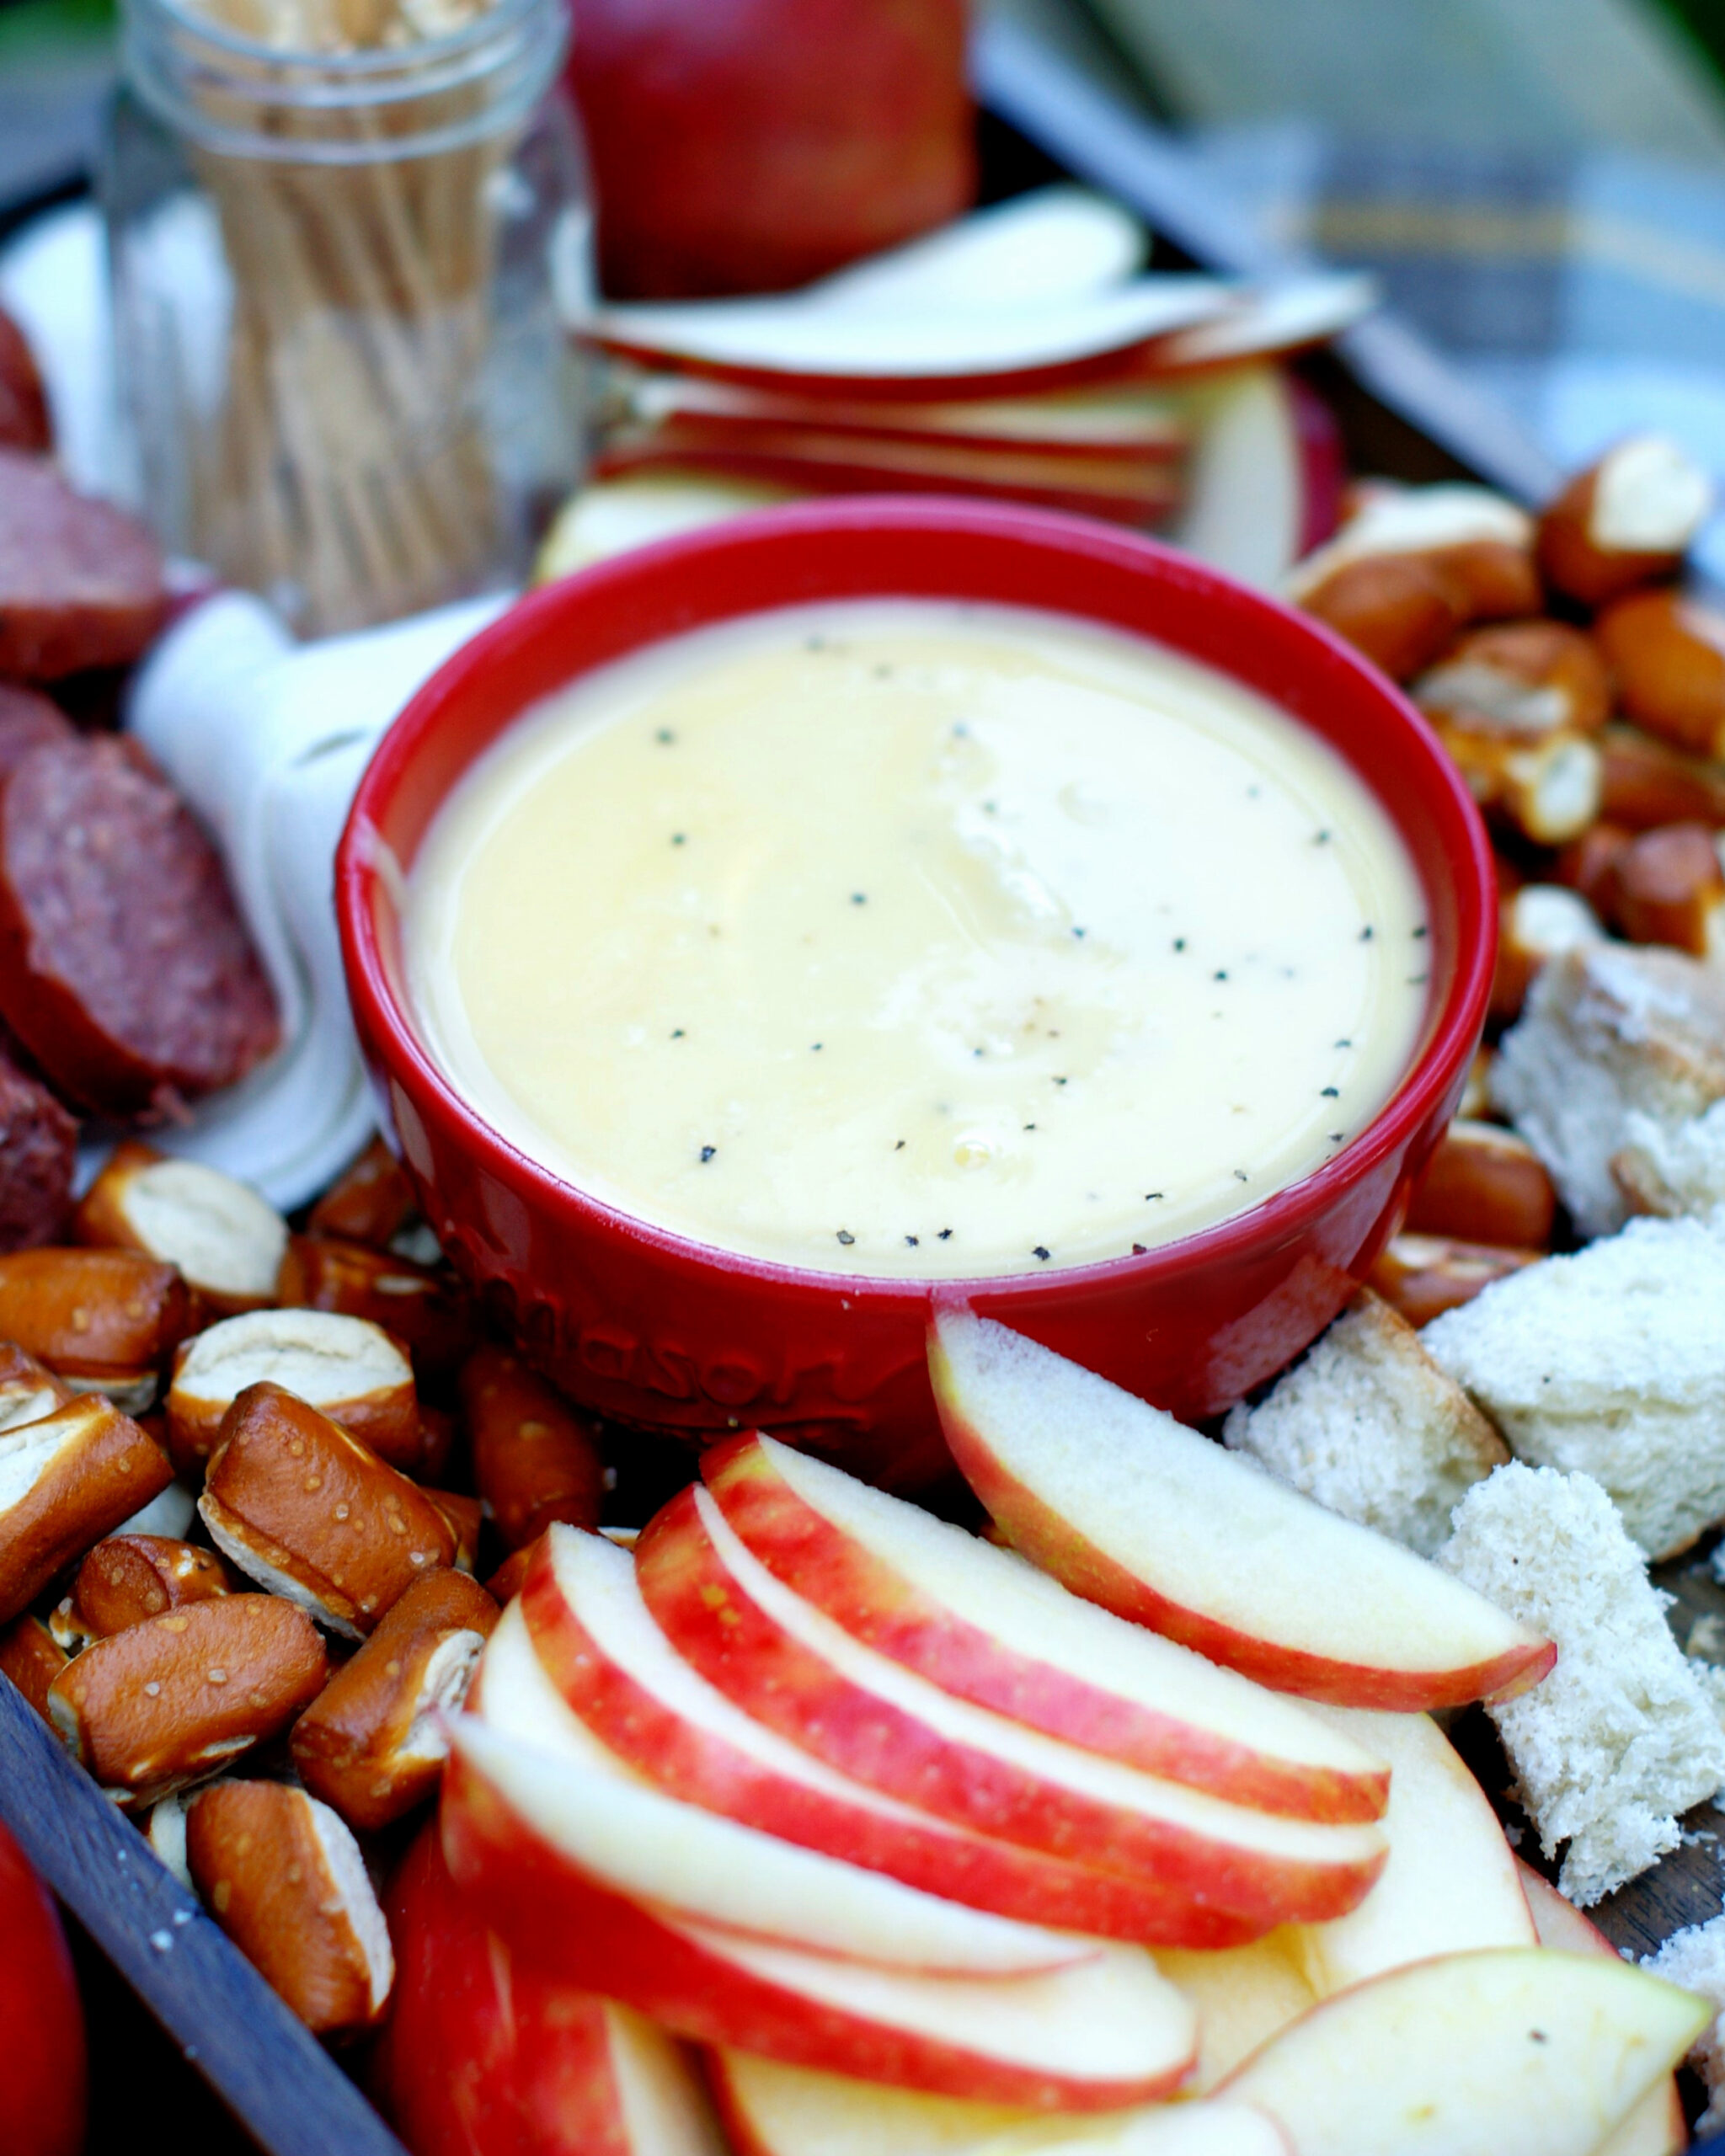 Apple Cider Cheese Fondue with apples & pretzel dippers